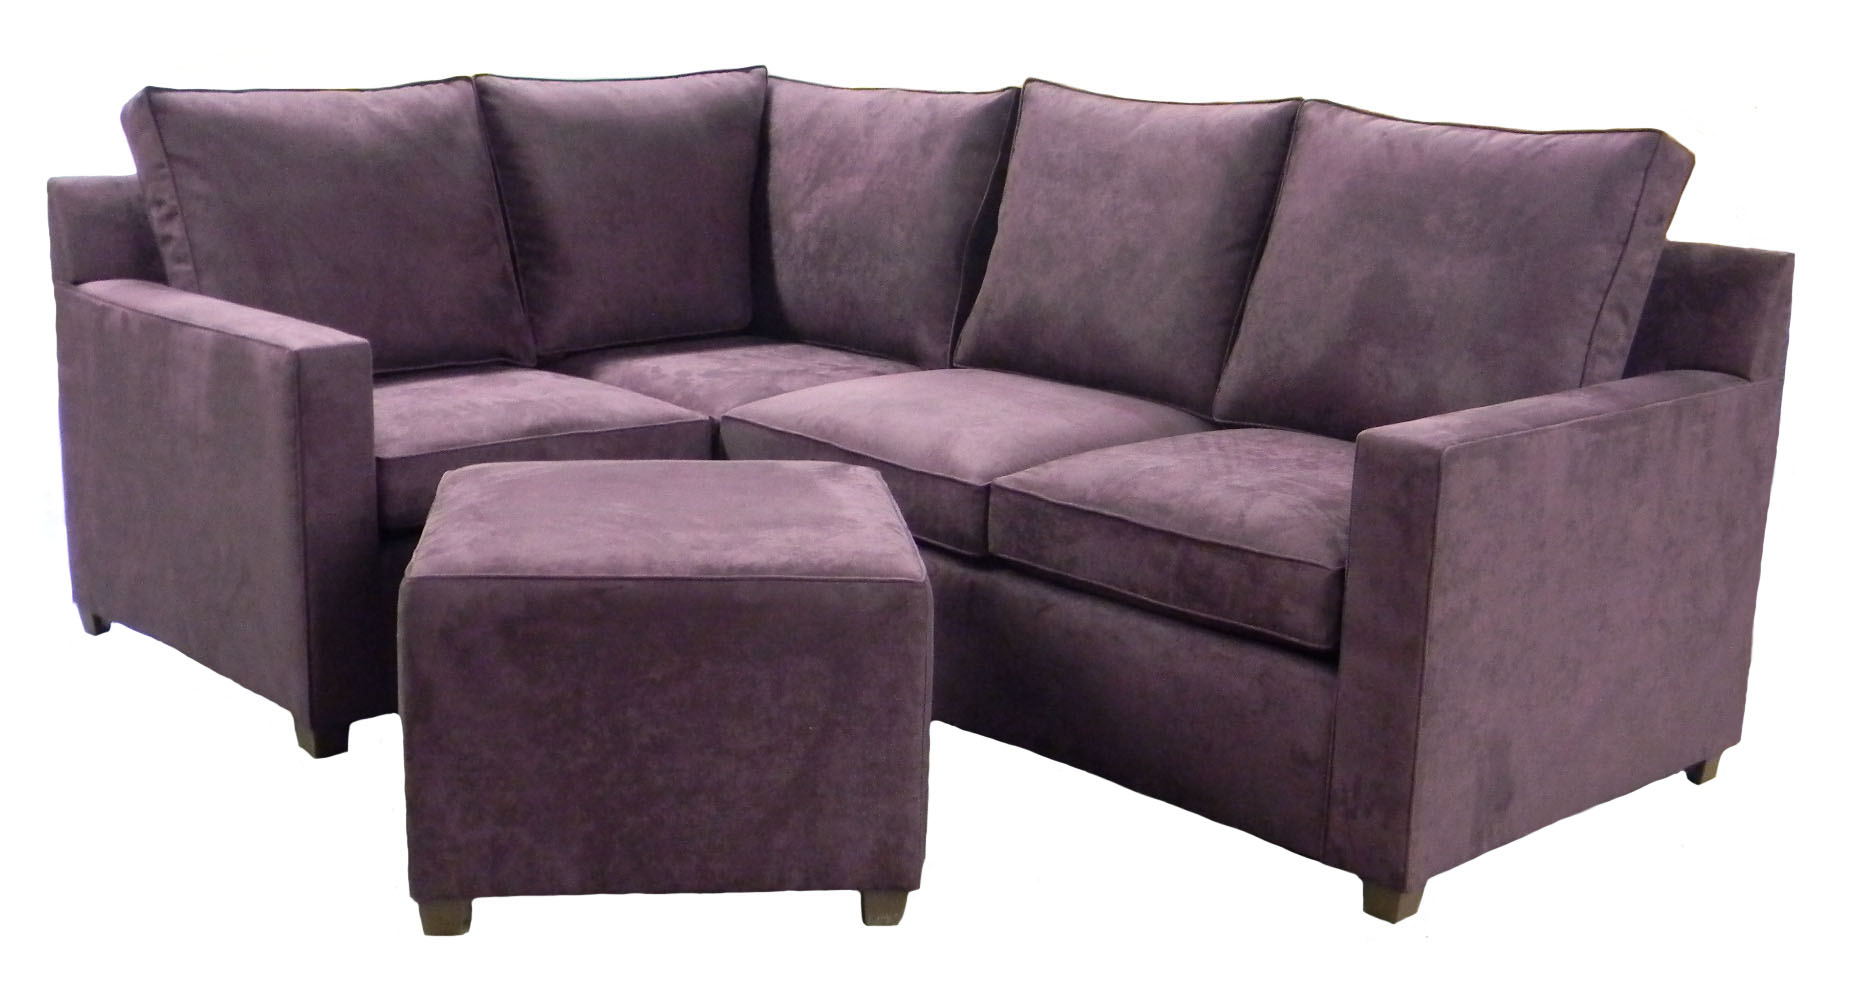 apartment size sectional sofa with chaise apartment size sectional sofa inspirational 71 on sofas and couches YJFLARL